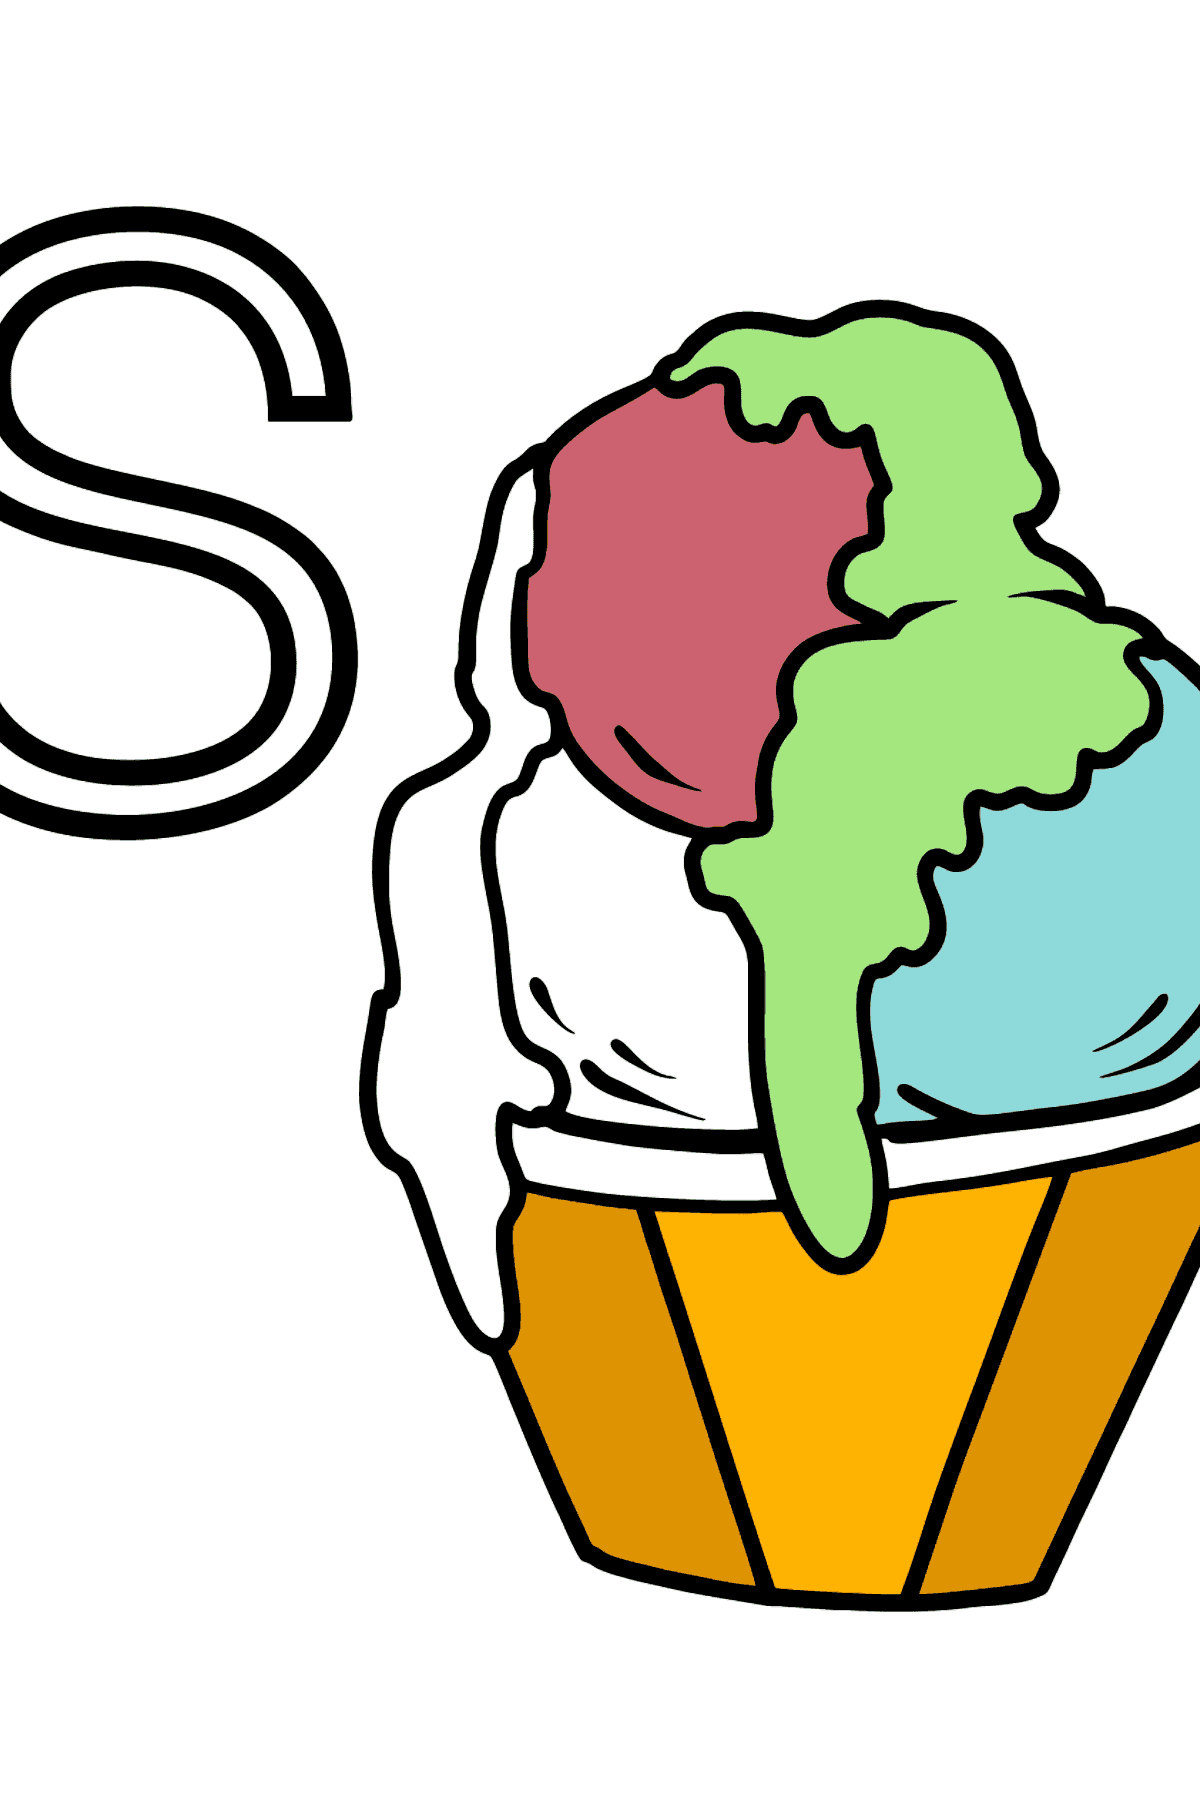 Spanish Letter S coloring pages - SORBETE - Coloring Pages for Kids